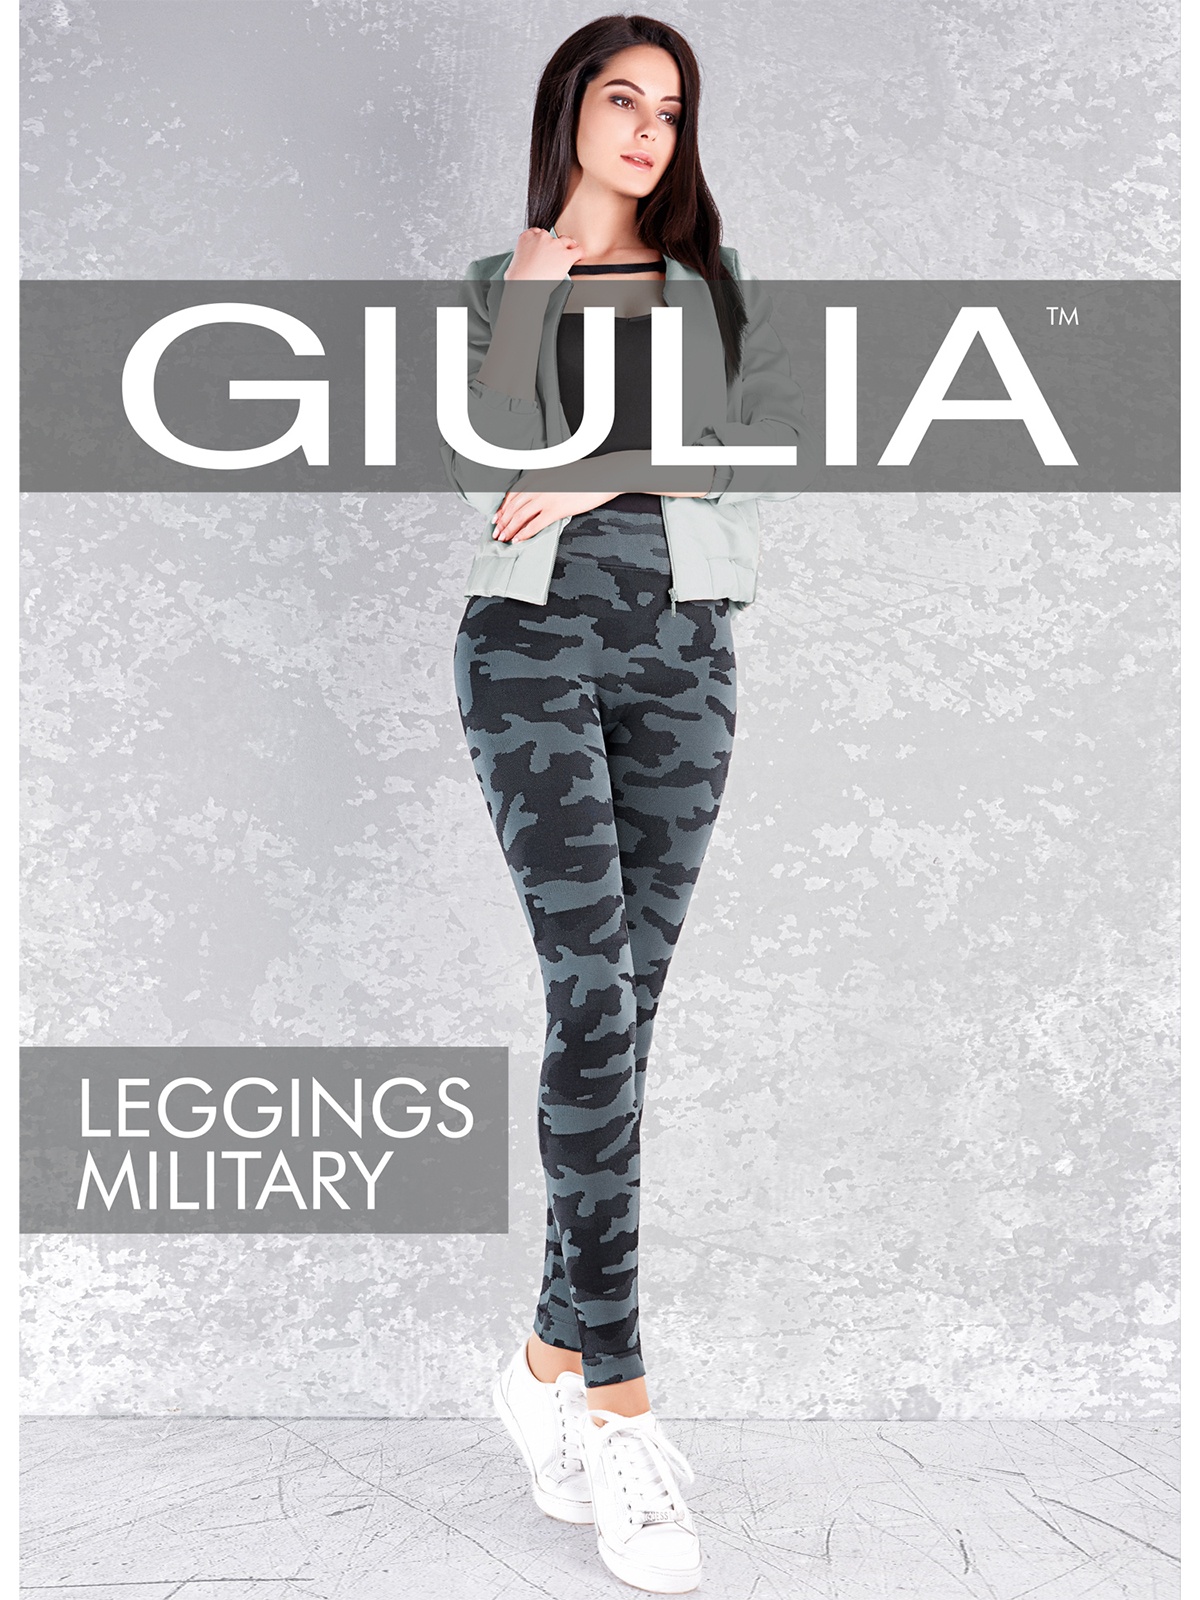 Giulia Military Leggings